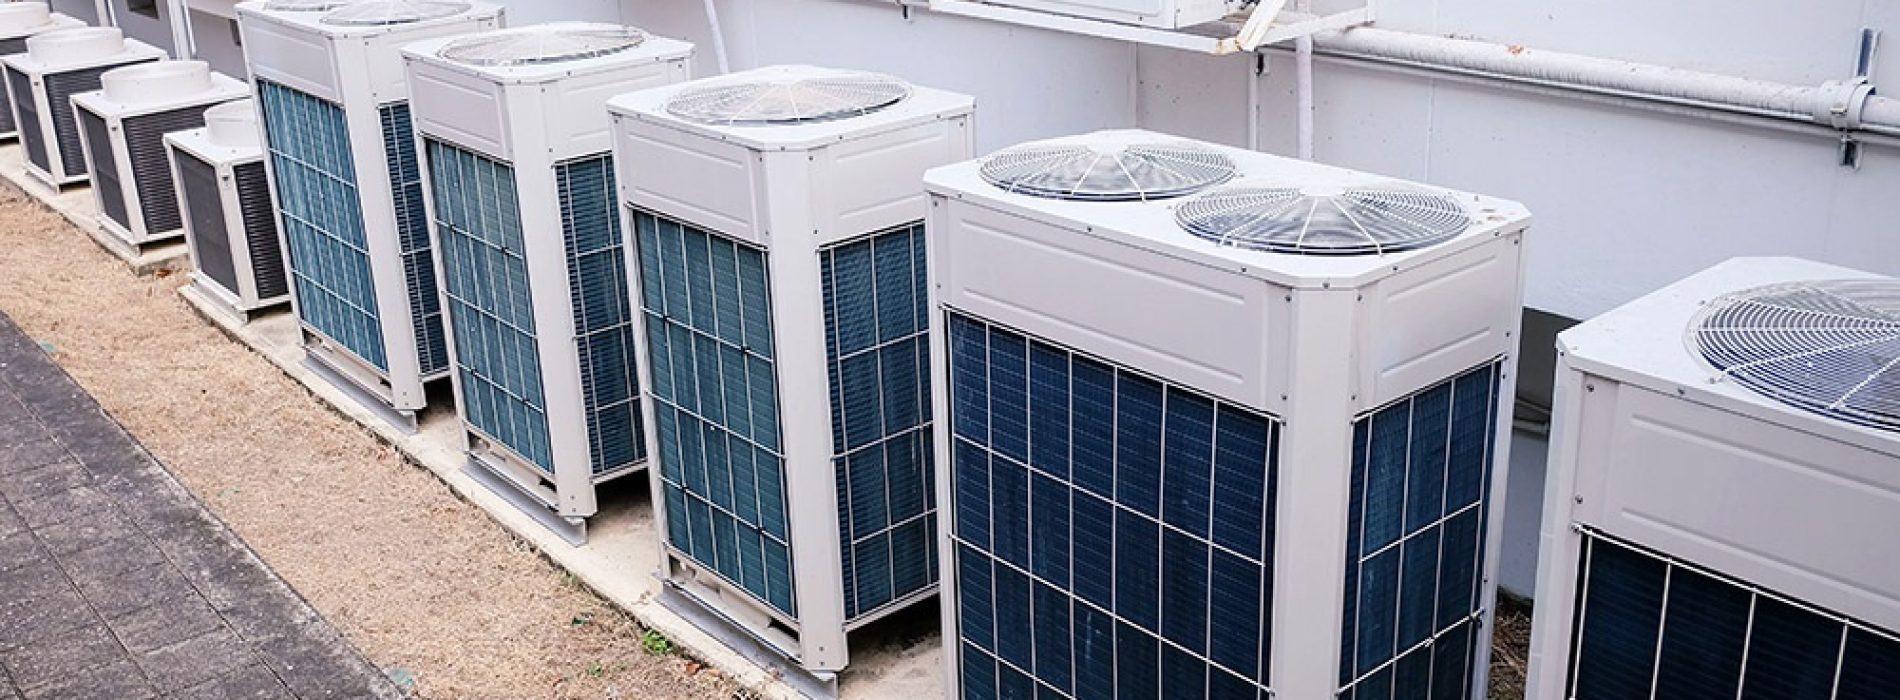 Different types of commercial refrigeration systems